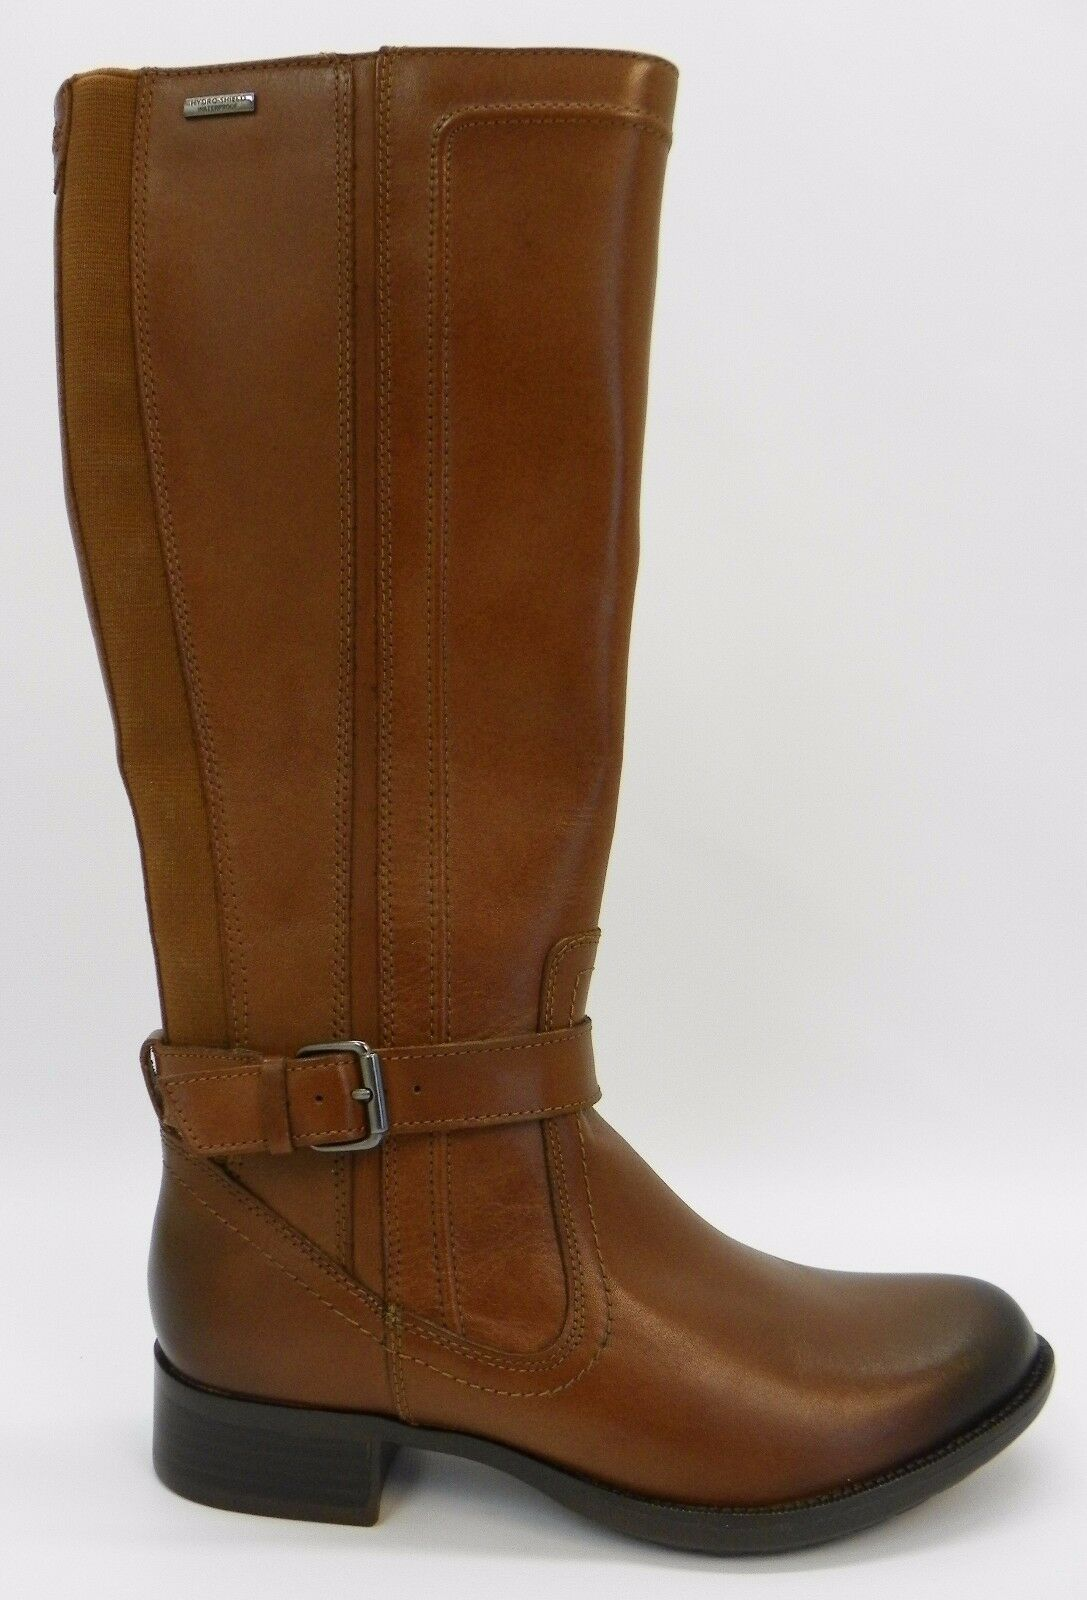 Rockport Womens Shoe Christy Round Toe Leather Tan Brown Tall Knee High Boots 6M